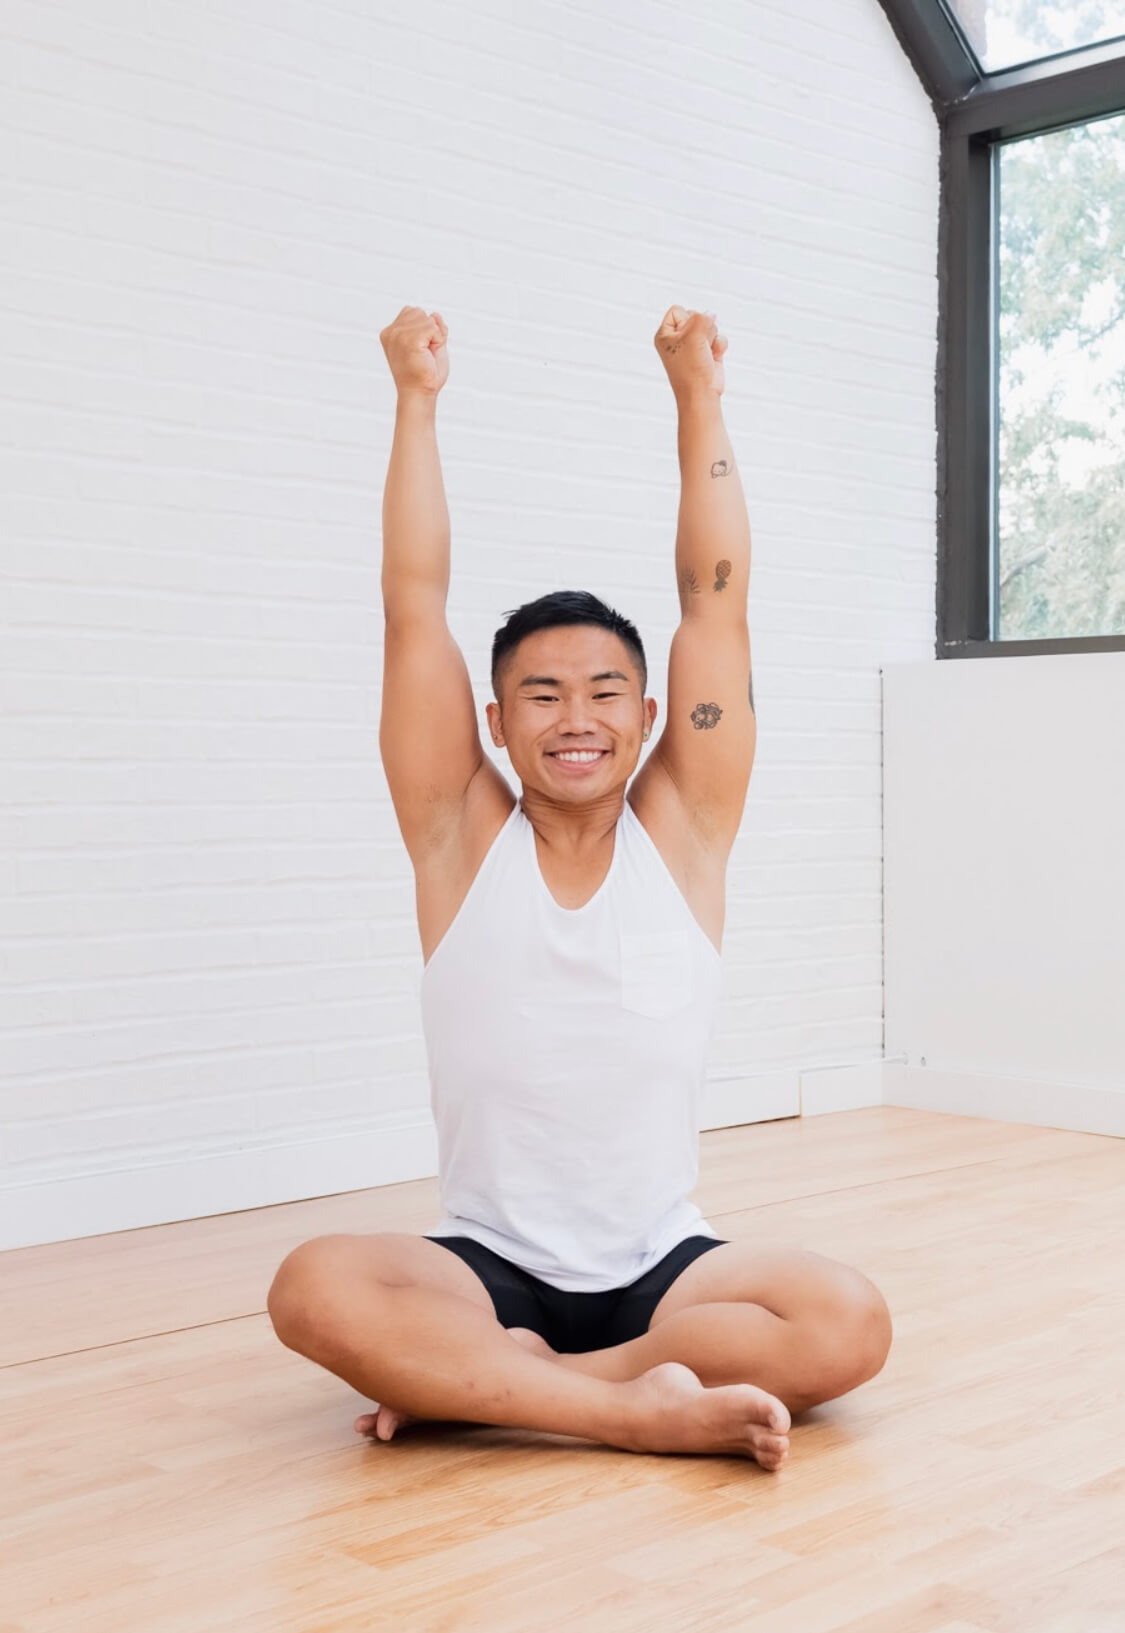 Chris Nguyen on a yoga mat performing a yoga pose with his leg wrapped around his back.